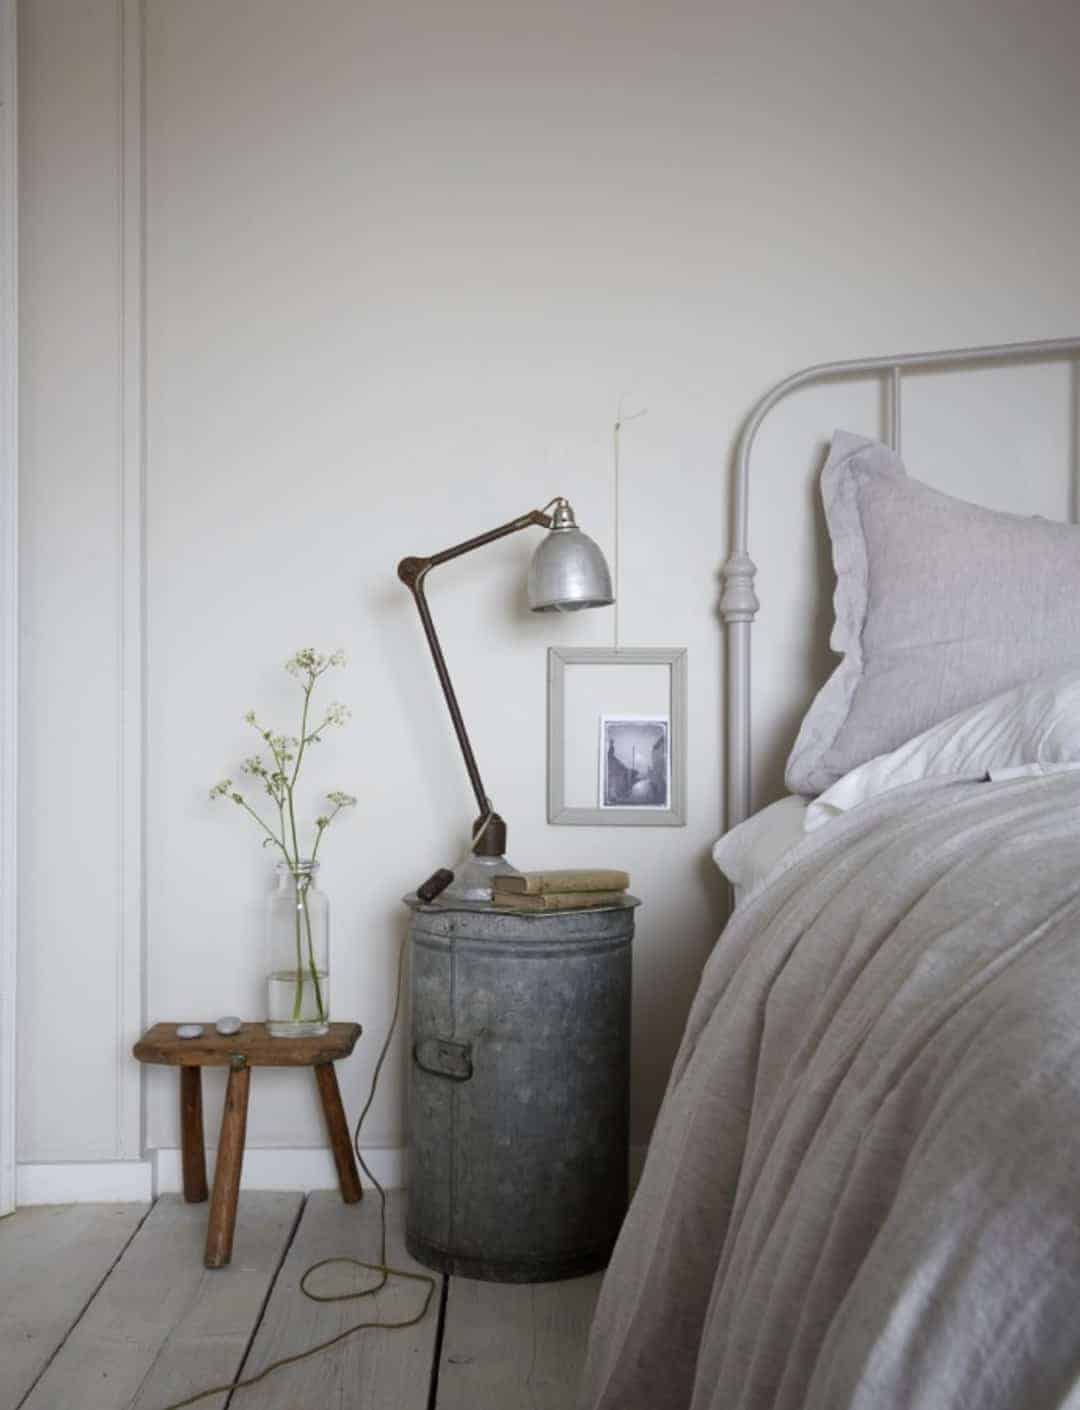 love this simple rustic seaside coastal bedroom with whitewashed floorboards industrial lamp and galvanised metal table and pale grey walls